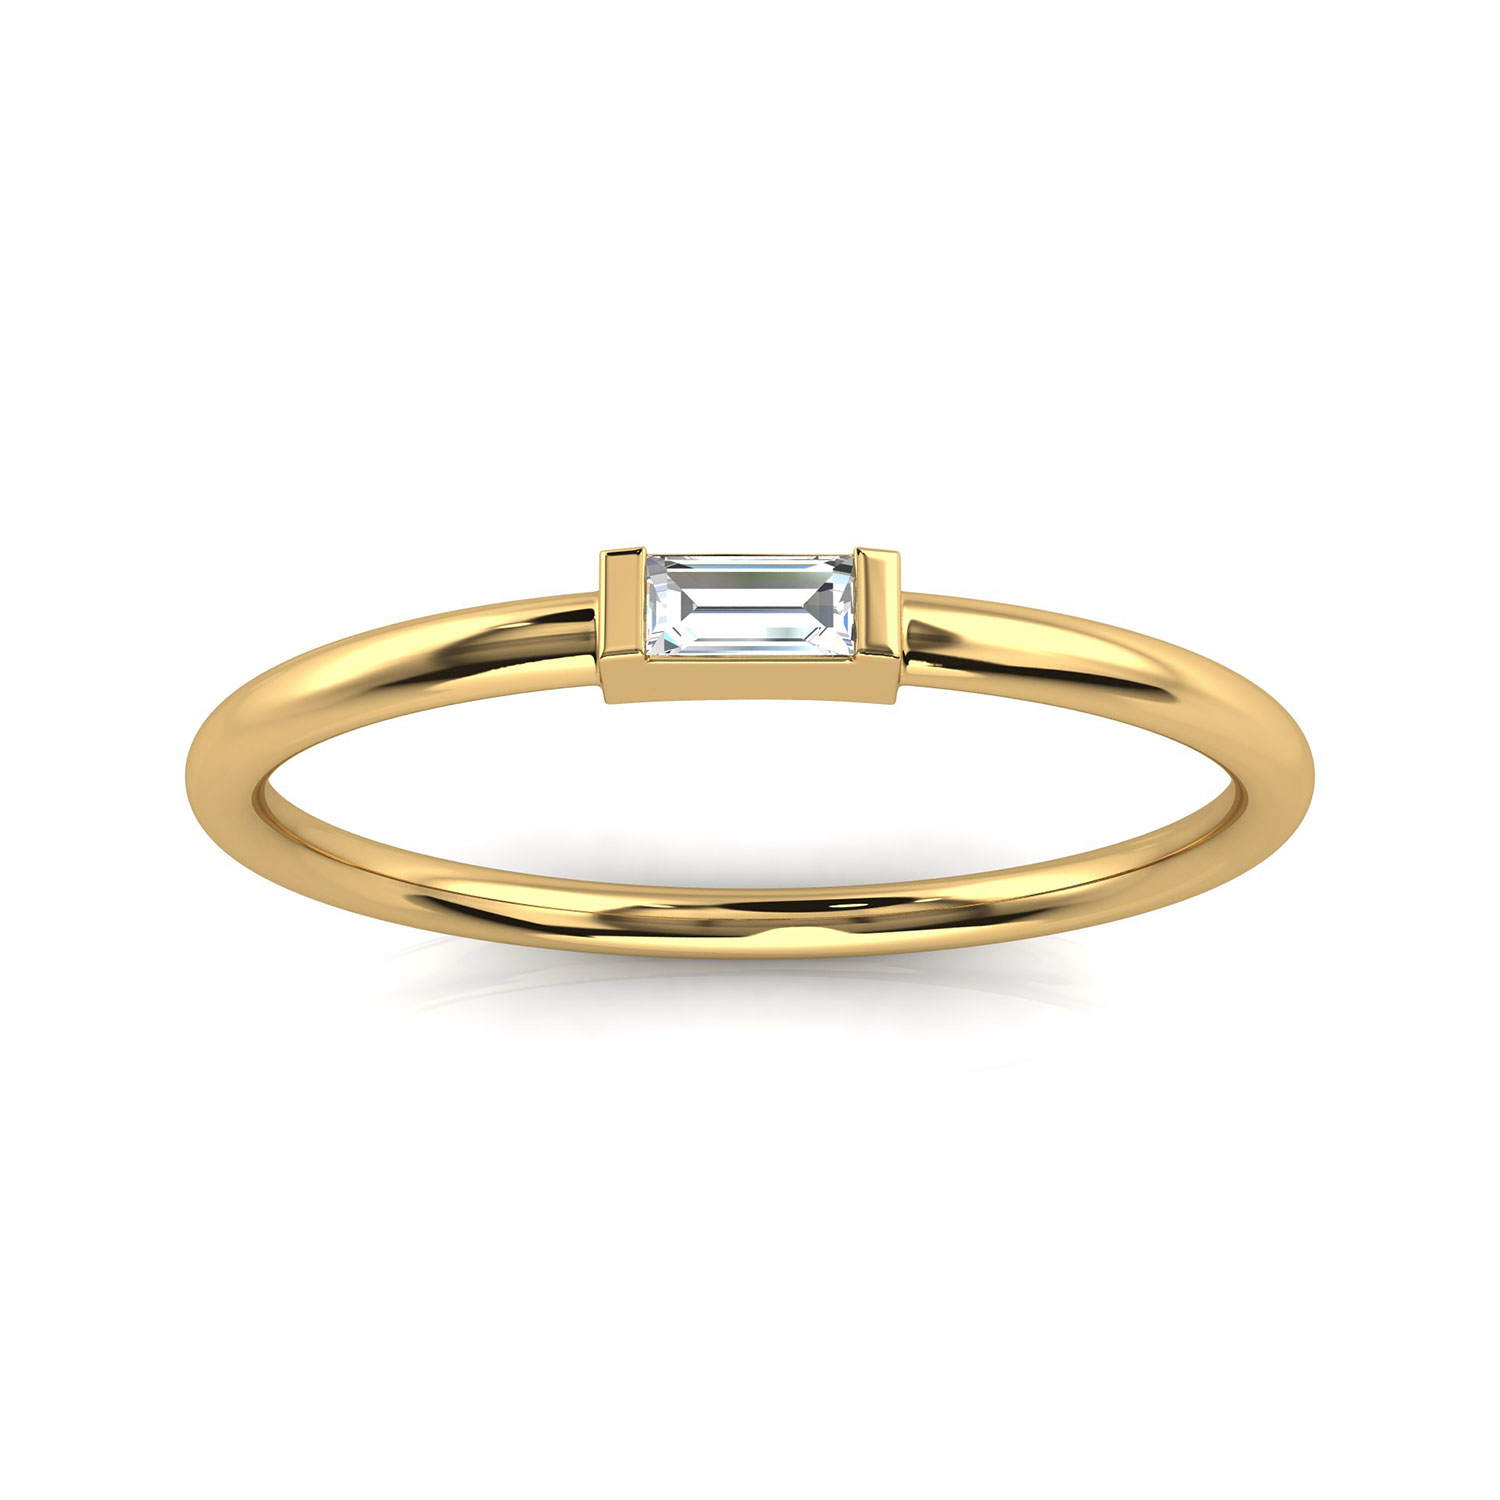 14K Yellow Gold Minimalist Lilach Baguette Solitaire Diamond Ring (Center - 0.06 Carat)